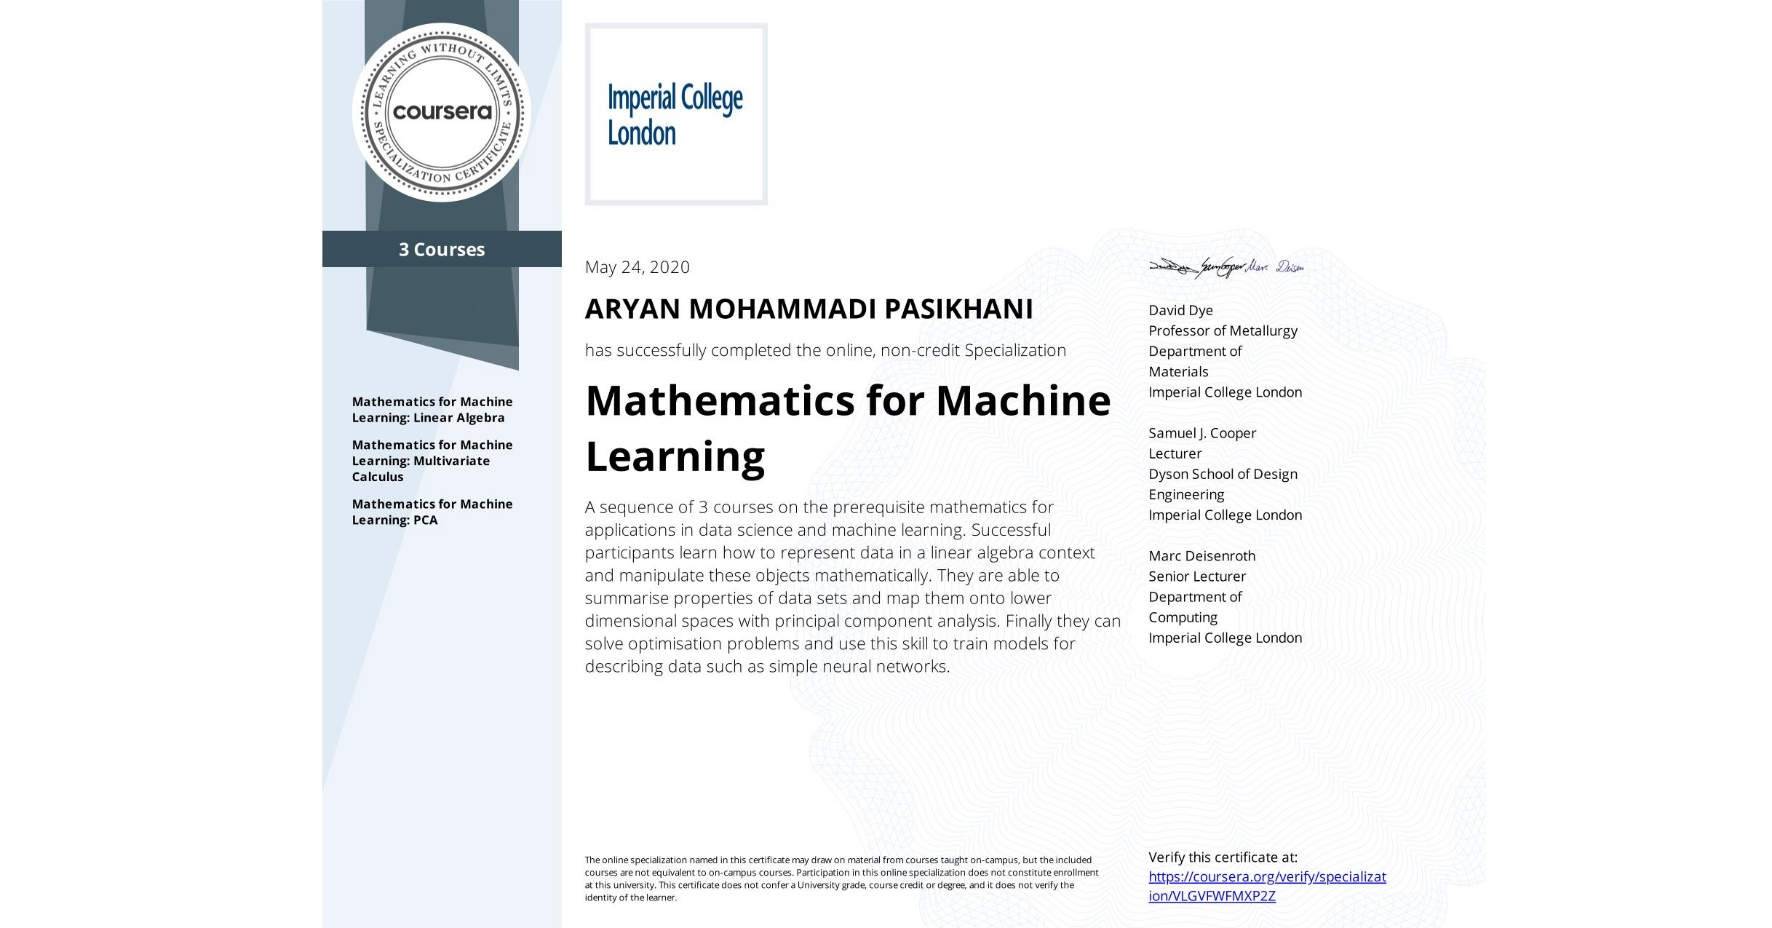 View certificate for ARYAN MOHAMMADI PASIKHANI, Mathematics for Machine Learning, offered through Coursera. A sequence of 3 courses on the prerequisite mathematics for applications in data science and machine learning.   Successful participants learn how to represent data in a linear algebra context and manipulate these objects mathematically. They are able to summarise properties of data sets and map them onto lower dimensional spaces with principal component analysis. Finally they can solve optimisation problems and use this skill to train models for describing data such as simple neural networks.